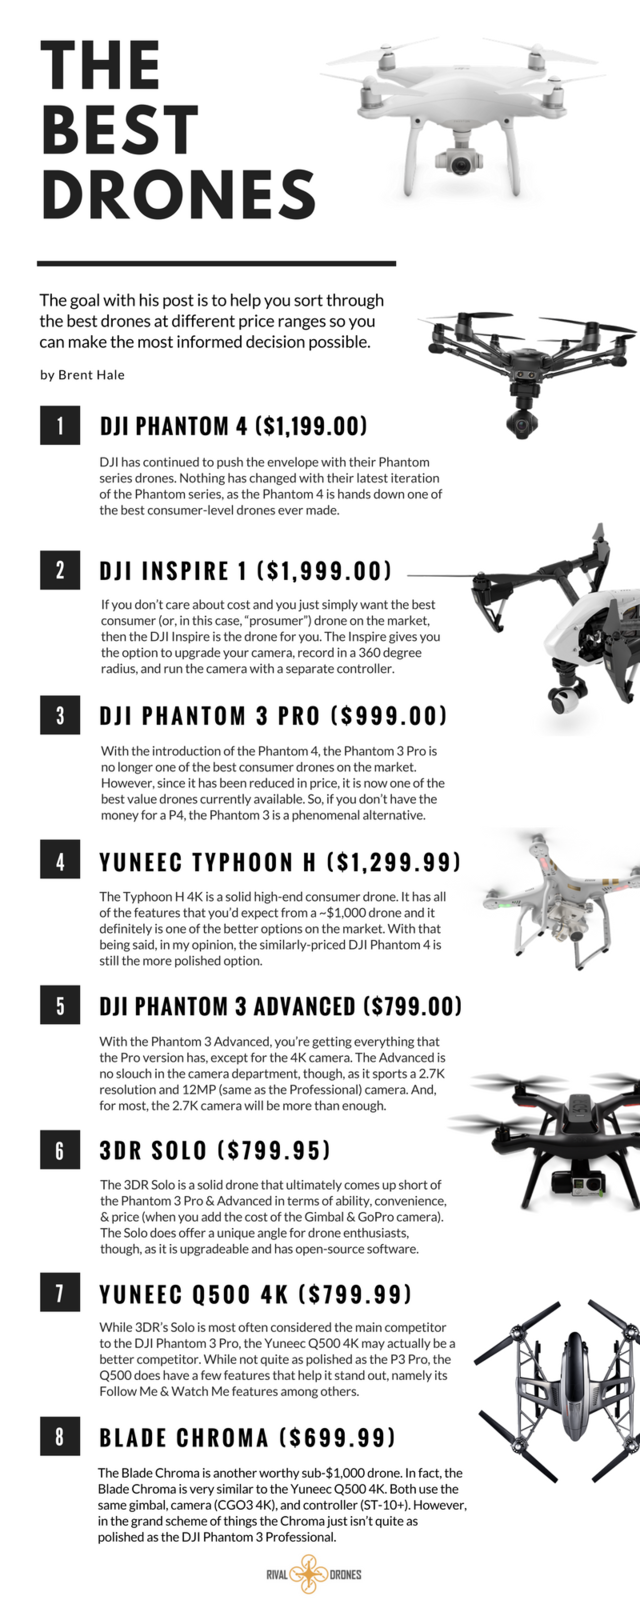 The best drones infographic